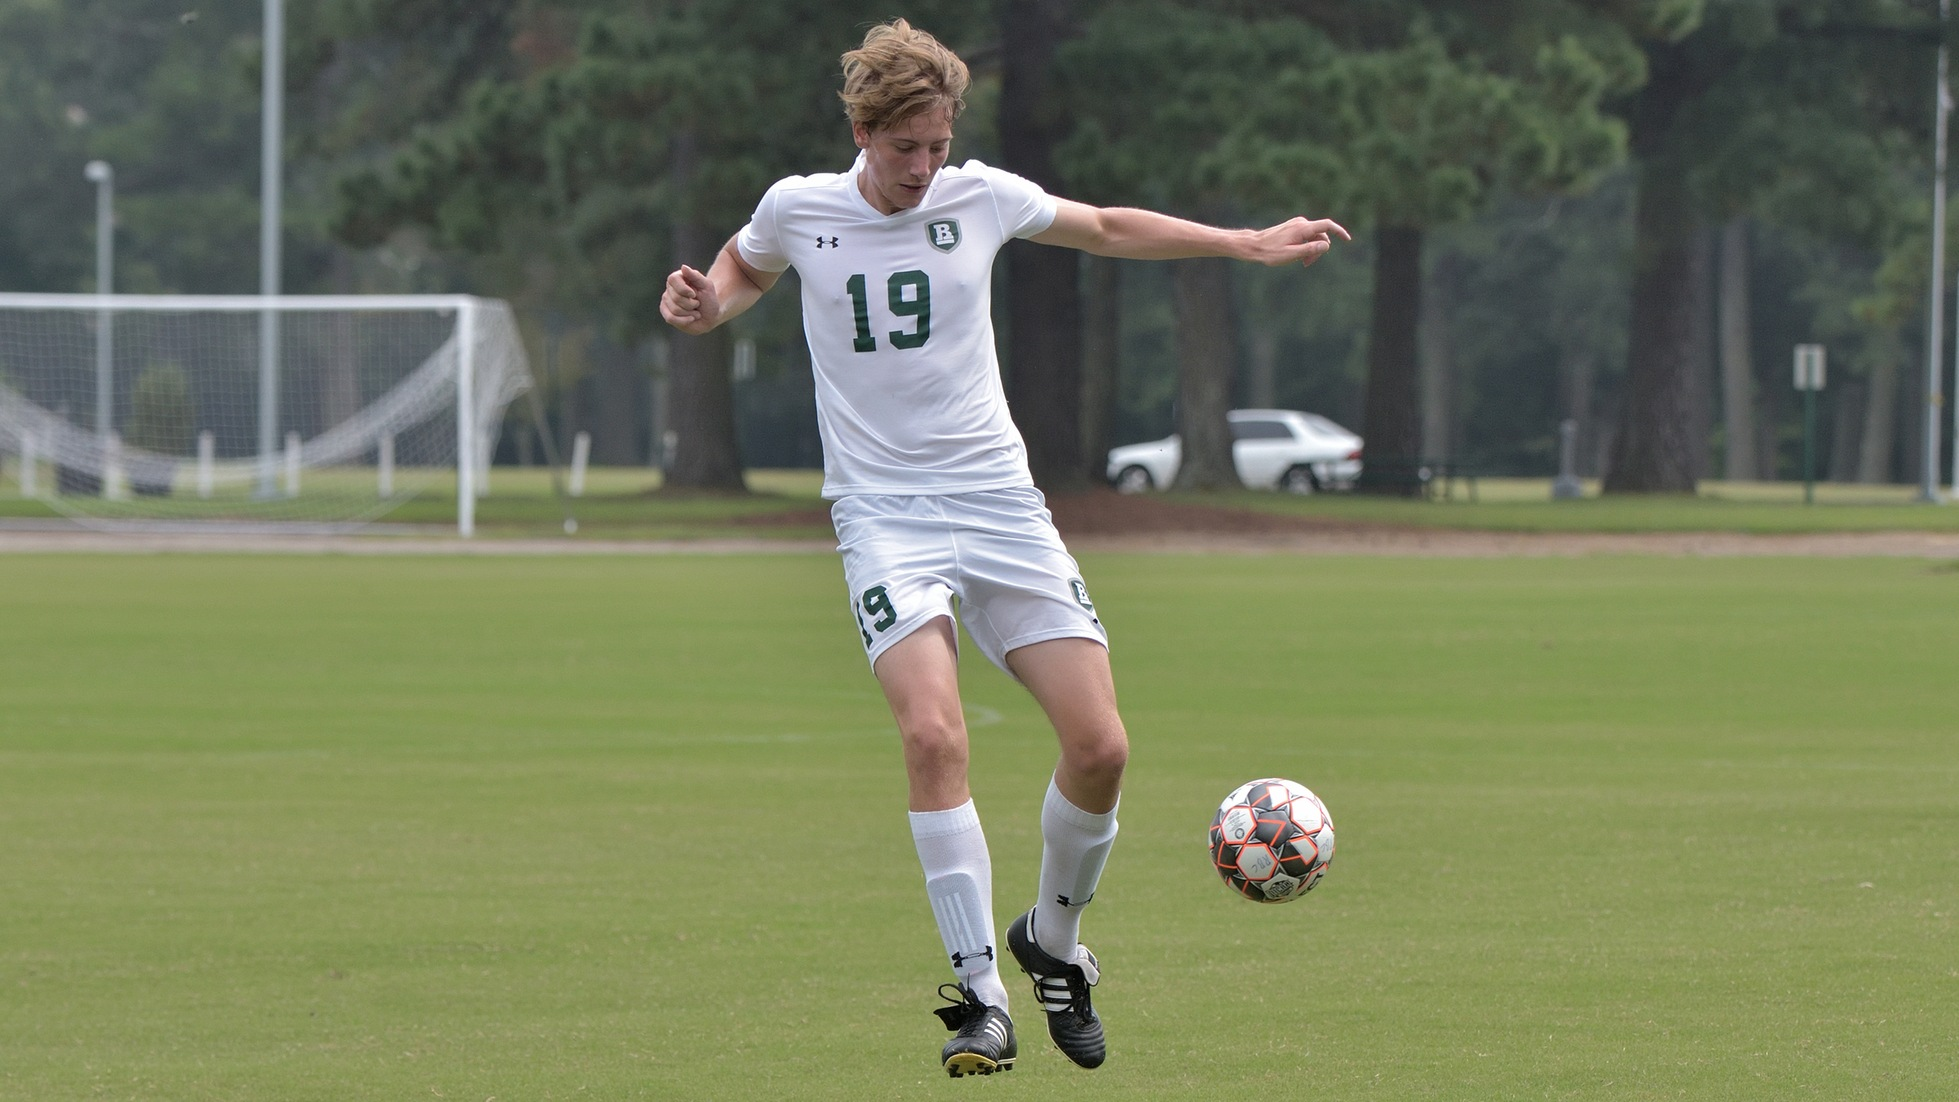 Statesmen Fall In Region X Semifinals, 2-1